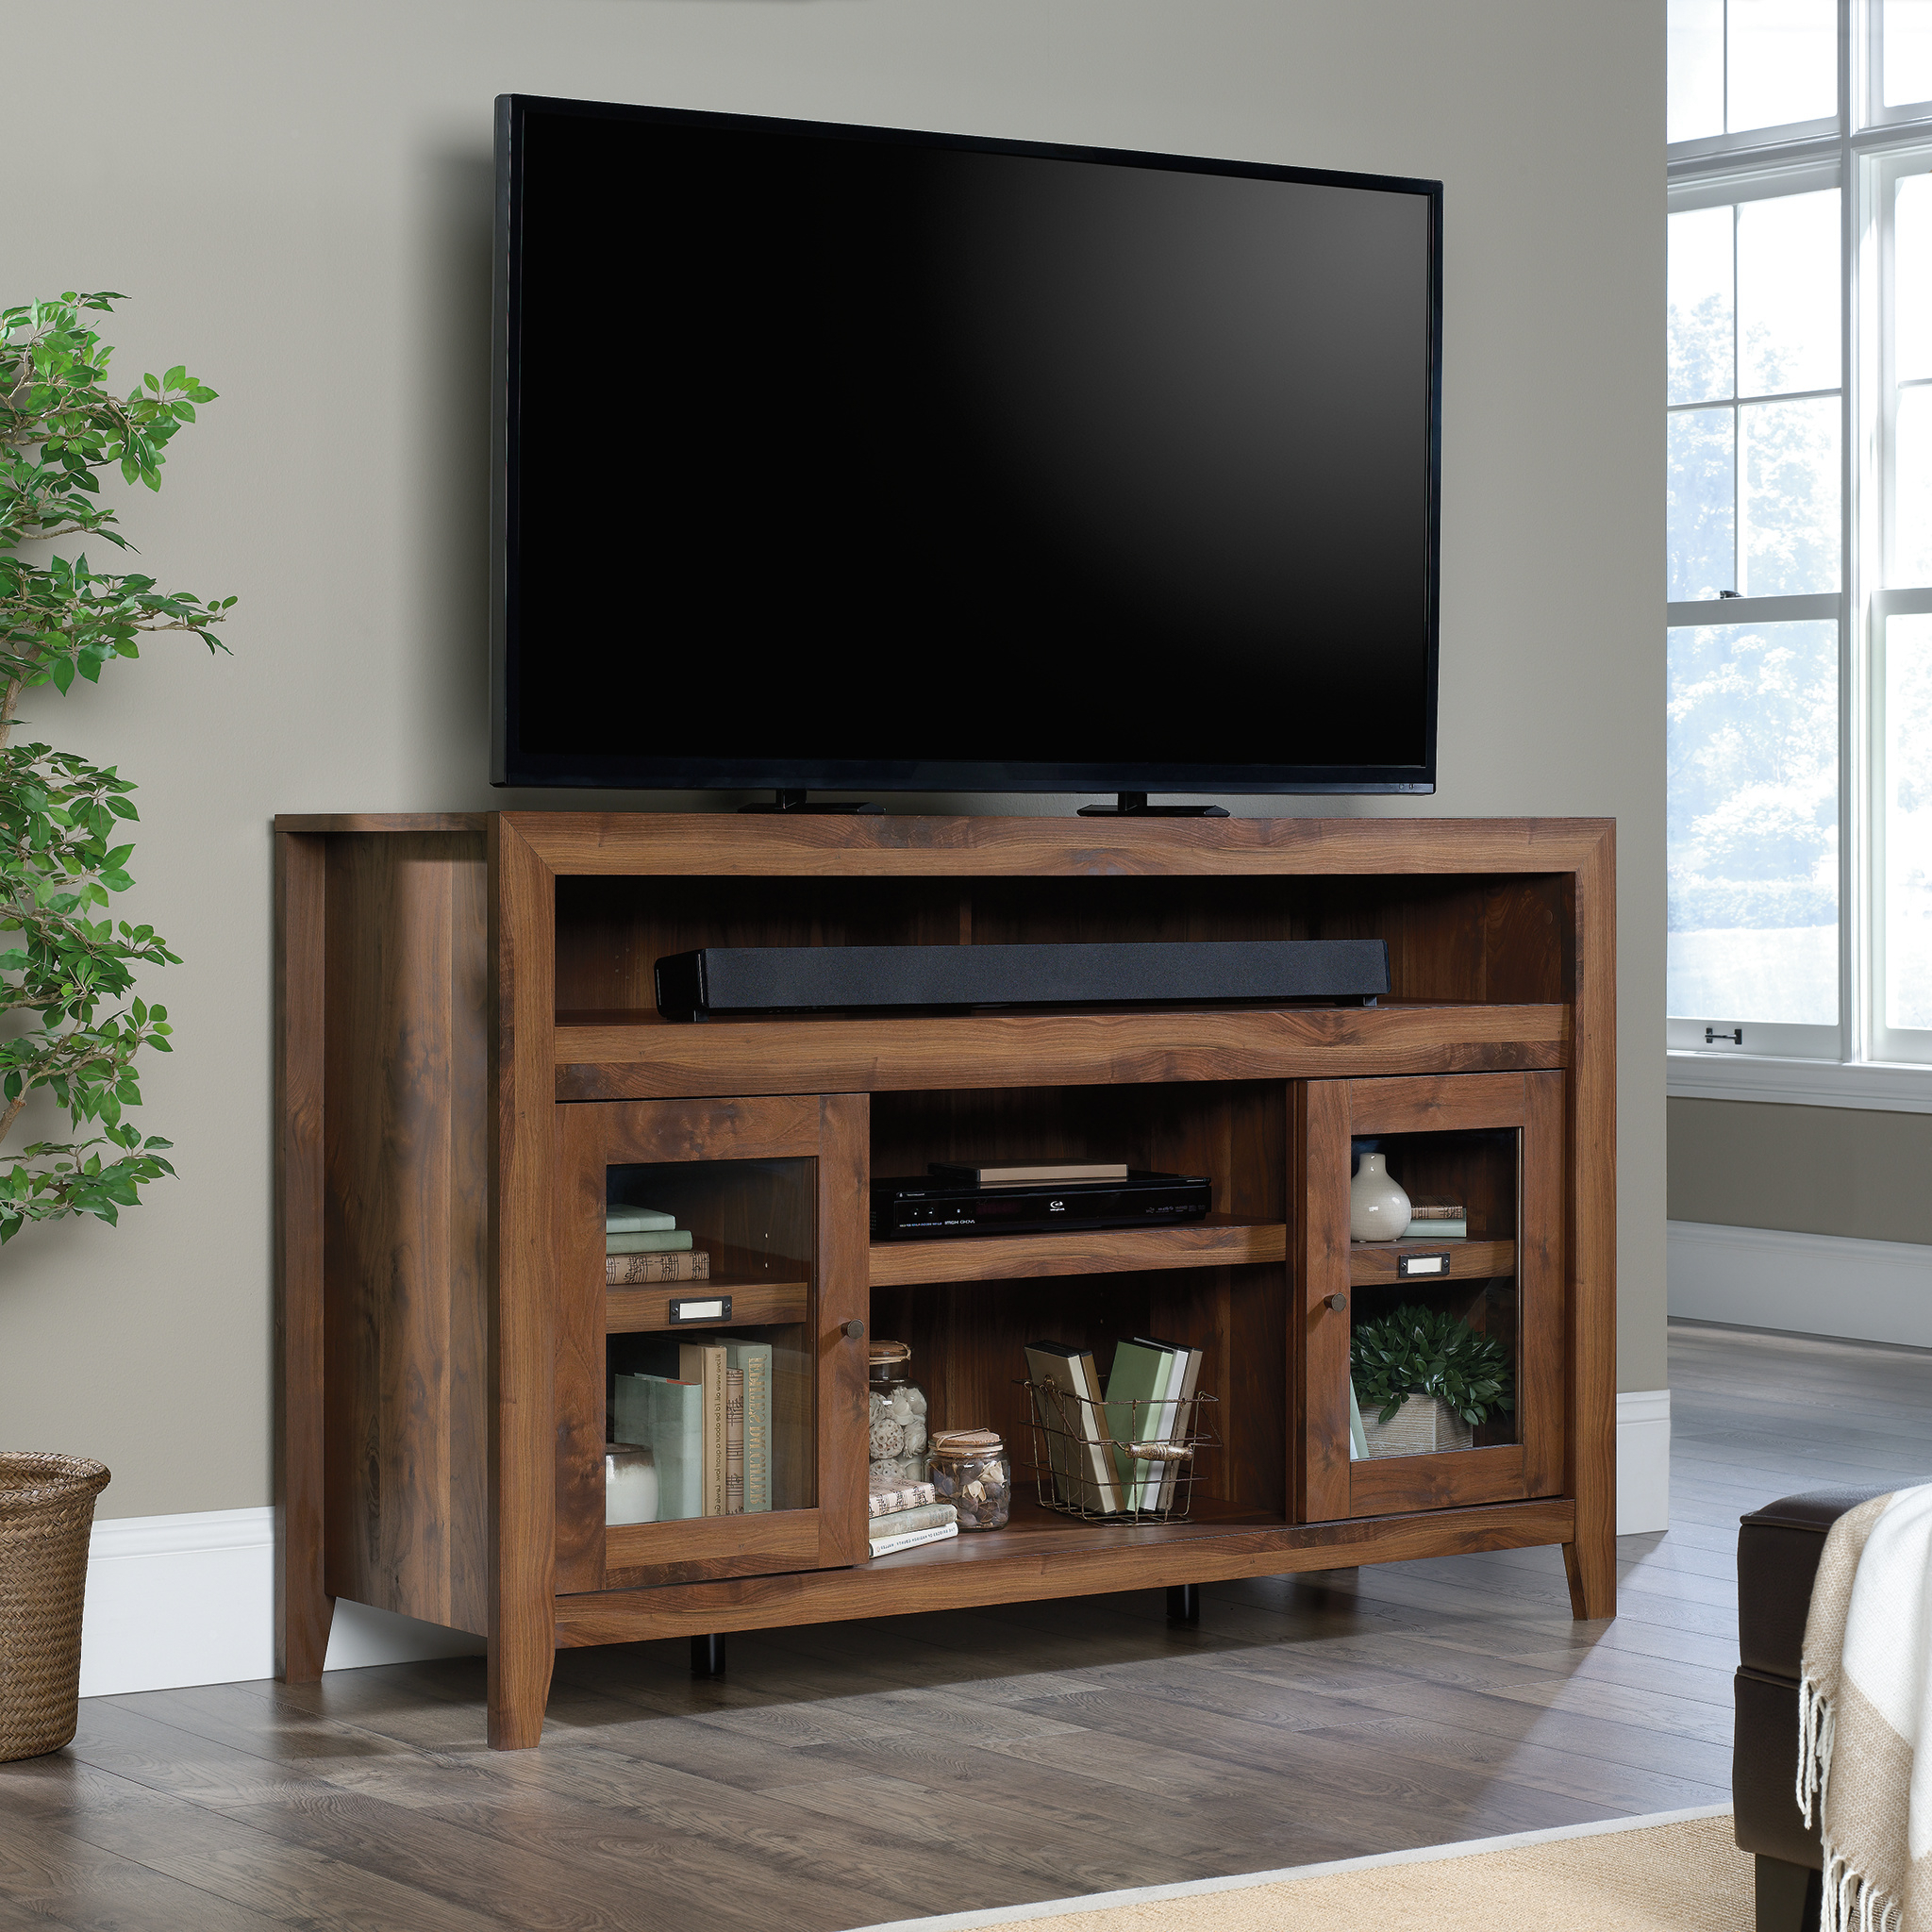 """Sauder Dakota Pass Tv Stand Credenza For Tvs Up To 60 With Regard To Margulies Tv Stands For Tvs Up To 60"""" (View 9 of 20)"""